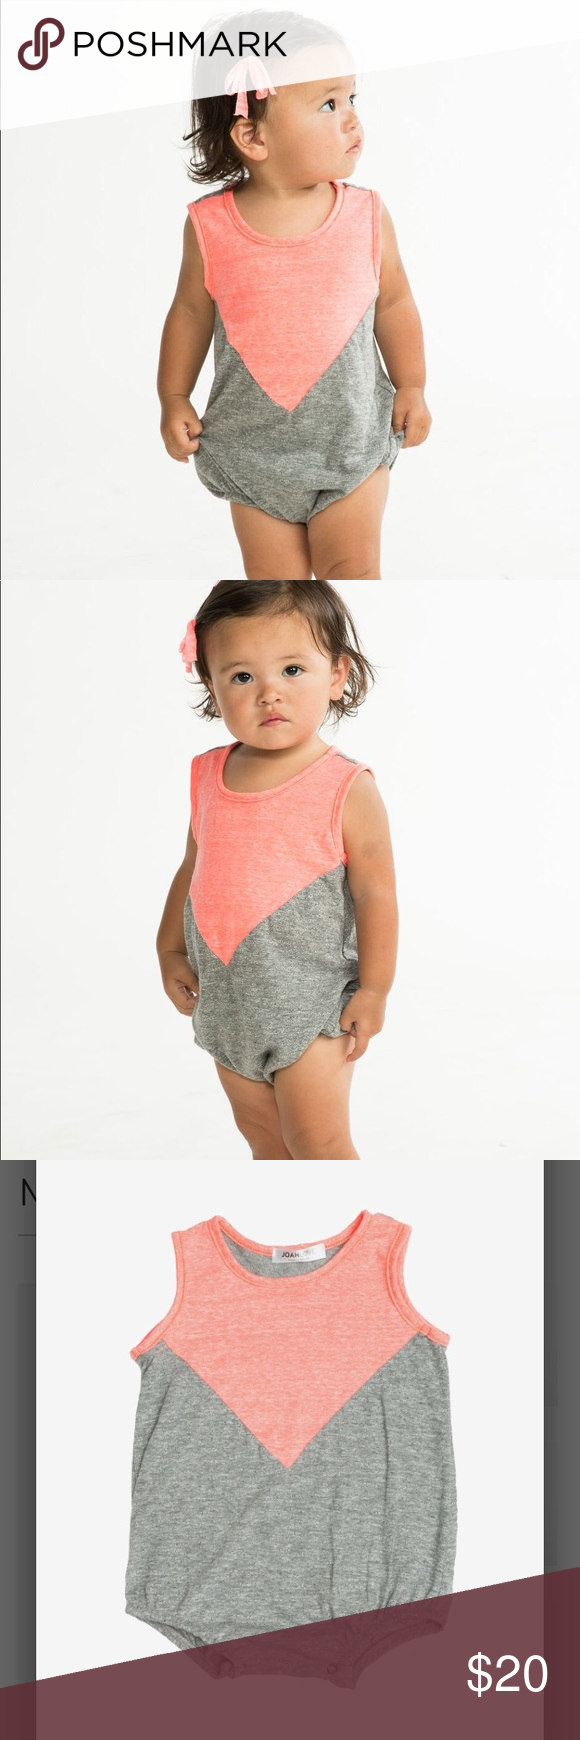 NWT Joah Love Coral and Gray Bodysuit Romper A modern romper in a coral and  grey 3667d8598